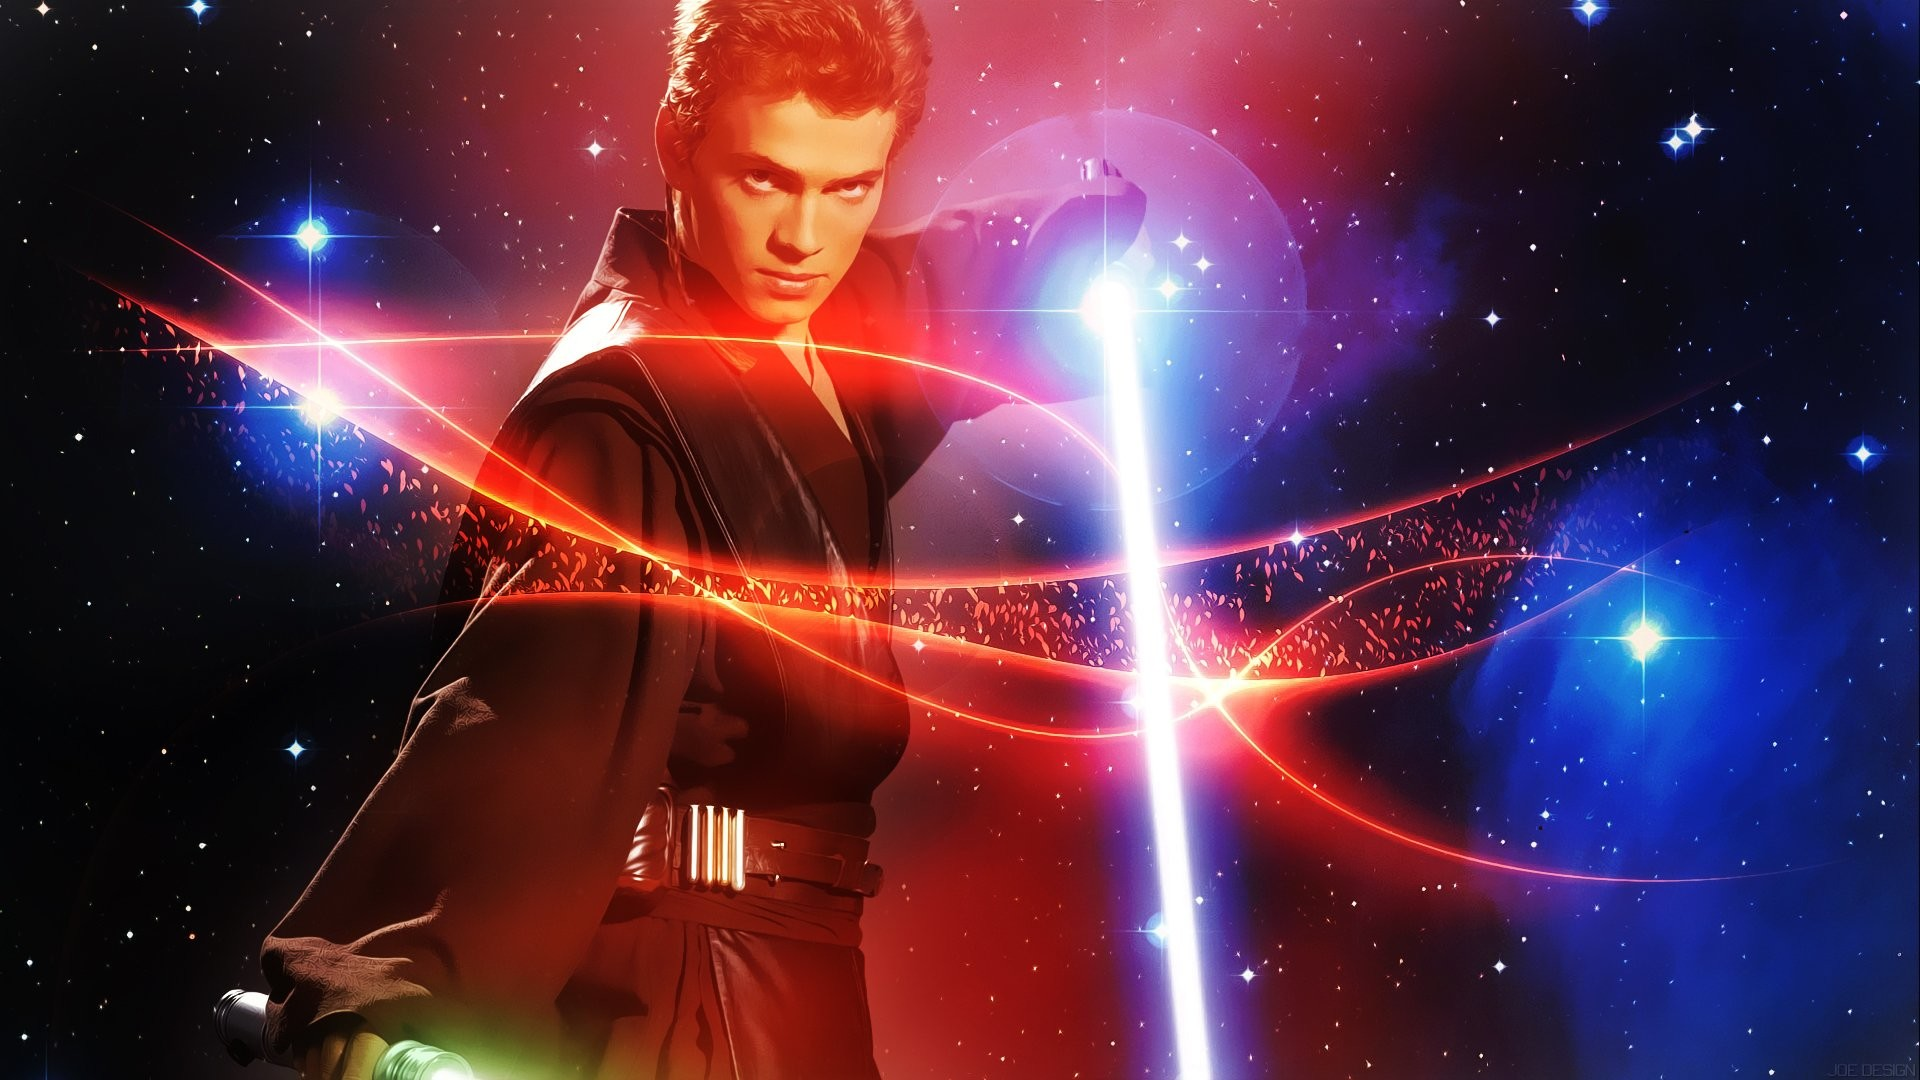 1920x1080 Anakin Skywalker 522469